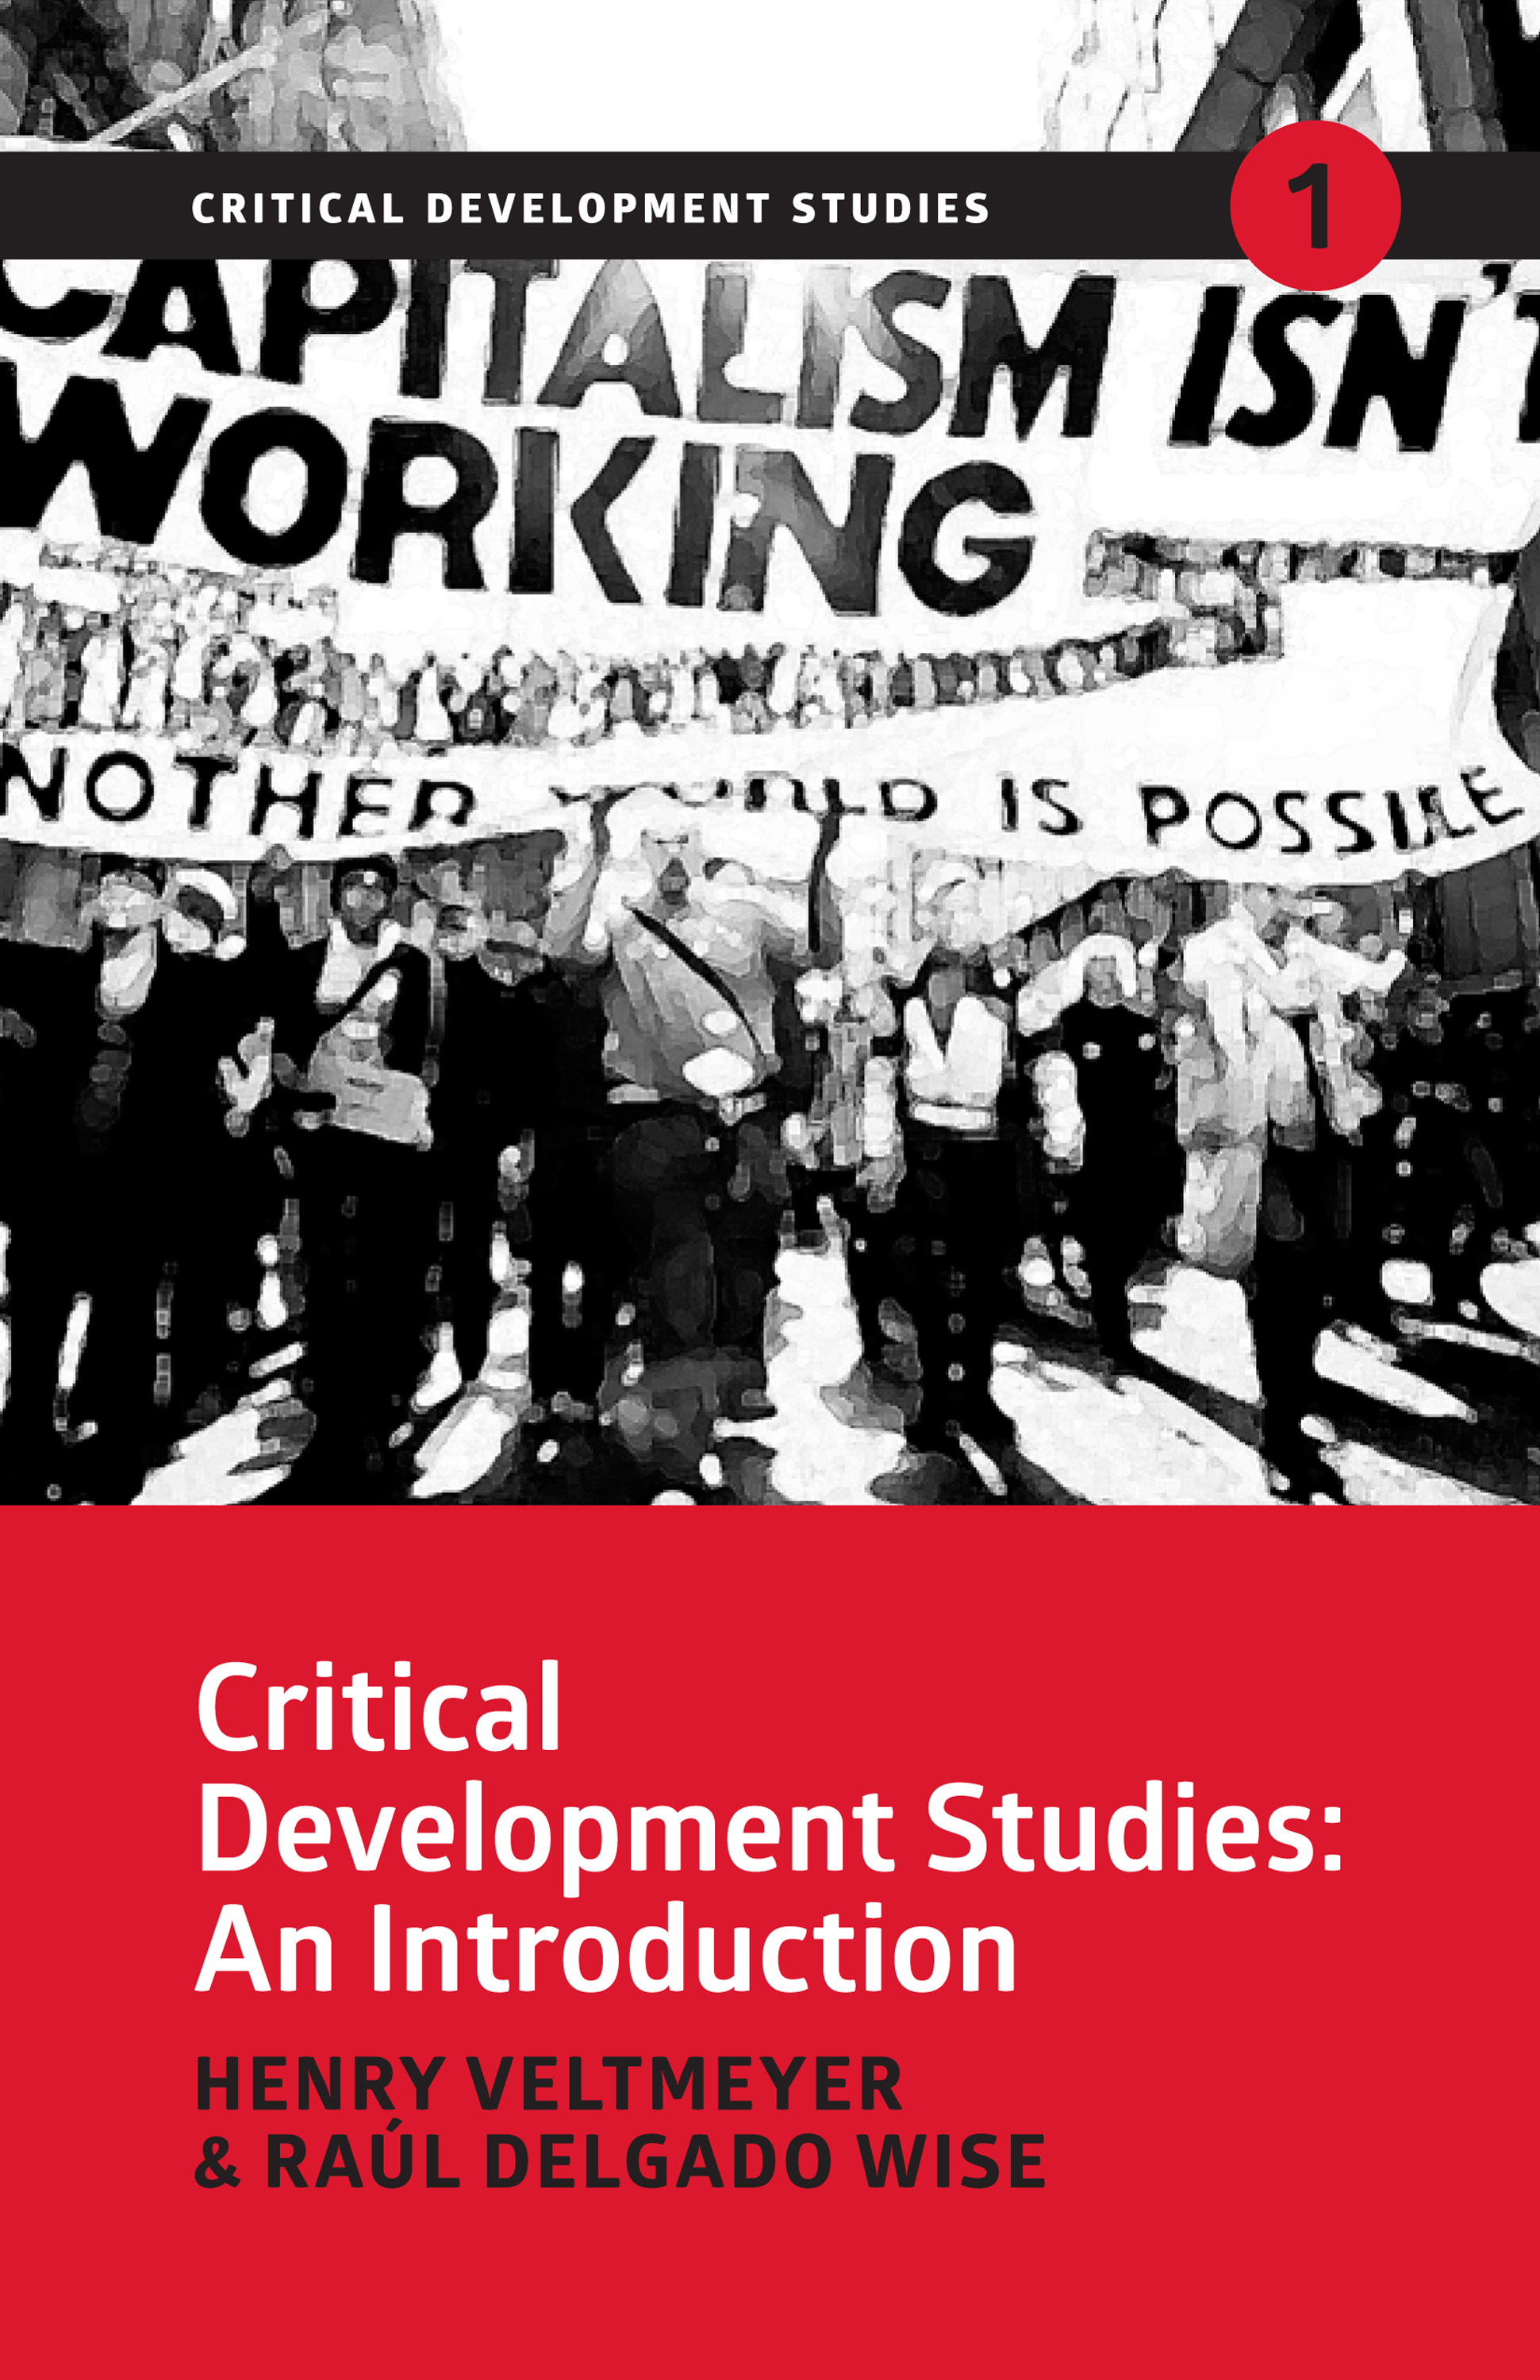 Critical Development Studies